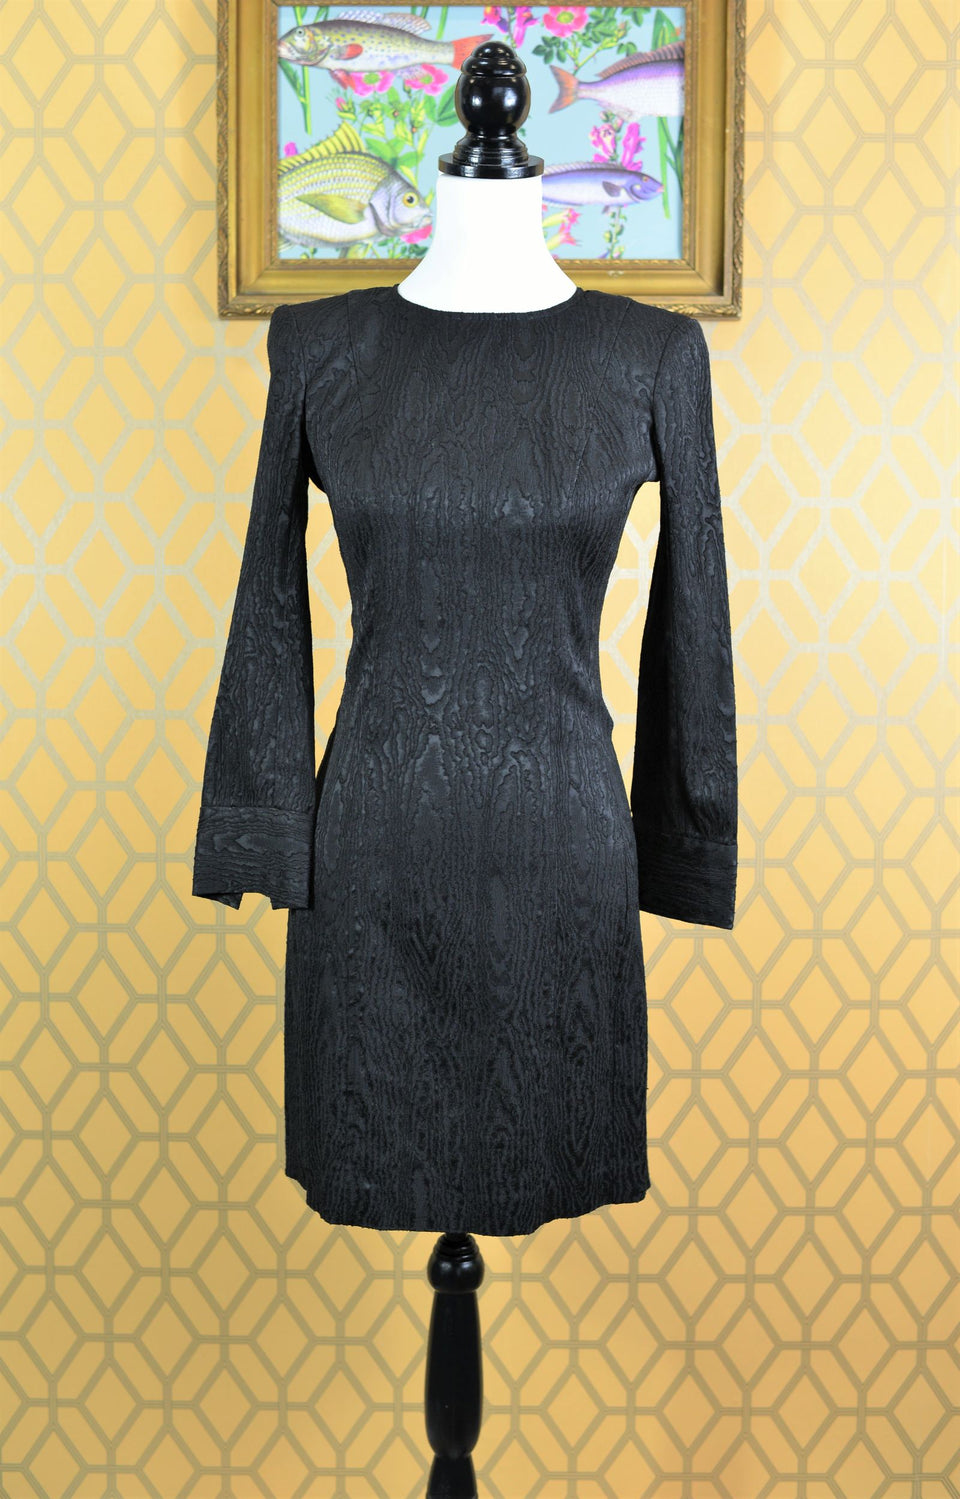 FRENCH CONNECTION Women's Little Black Dress with Long Sleeves, Size 8. Pre-Loved.